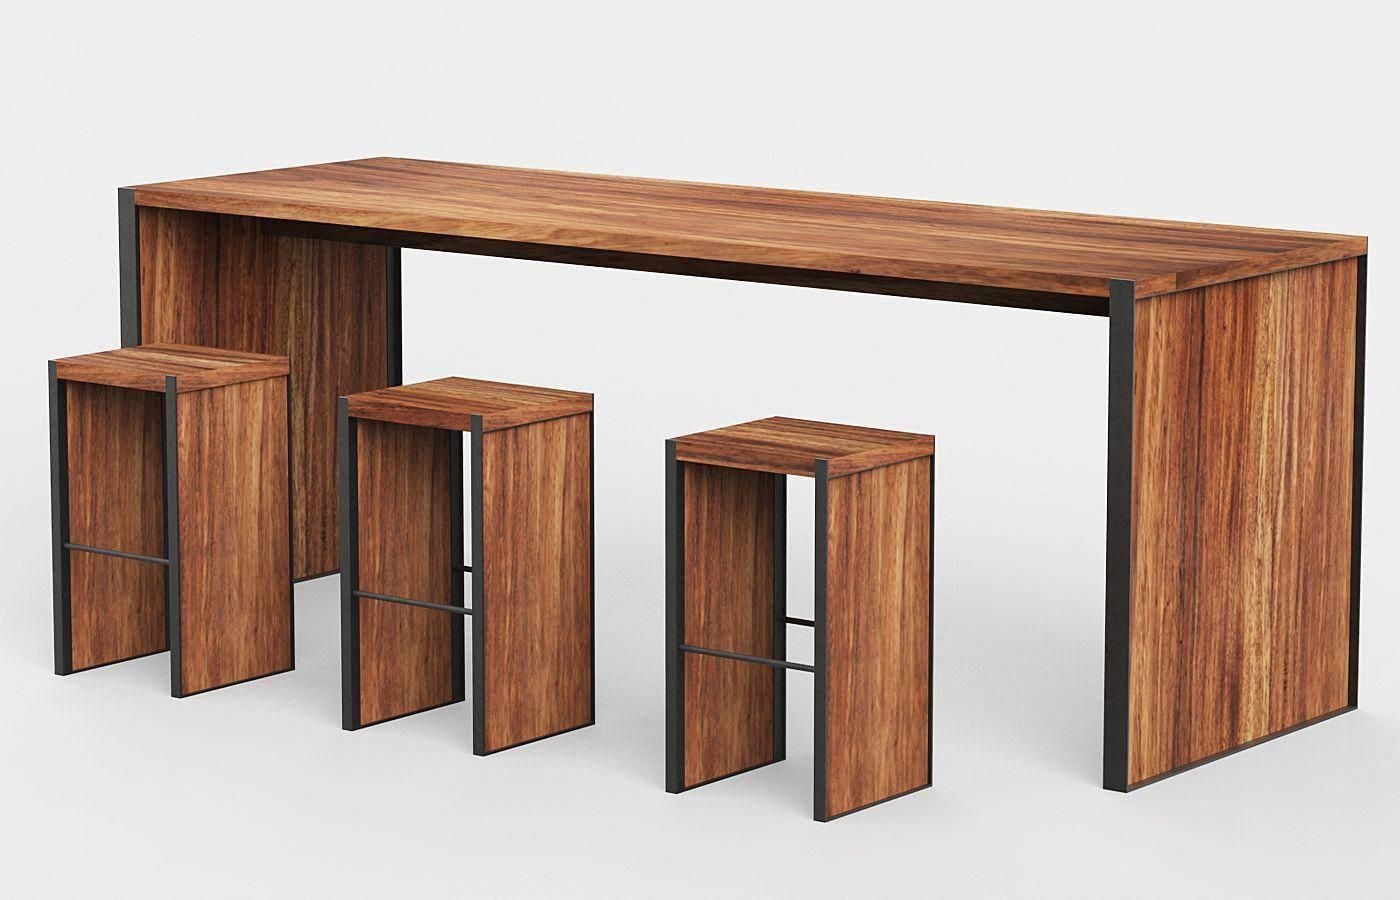 Fantastic Bar Tables Diy Info Is Available On Our Website Have A Look And You Will Not Be Sorry You Did Bartab Bar Table Design Bar Table Wooden Bar Table